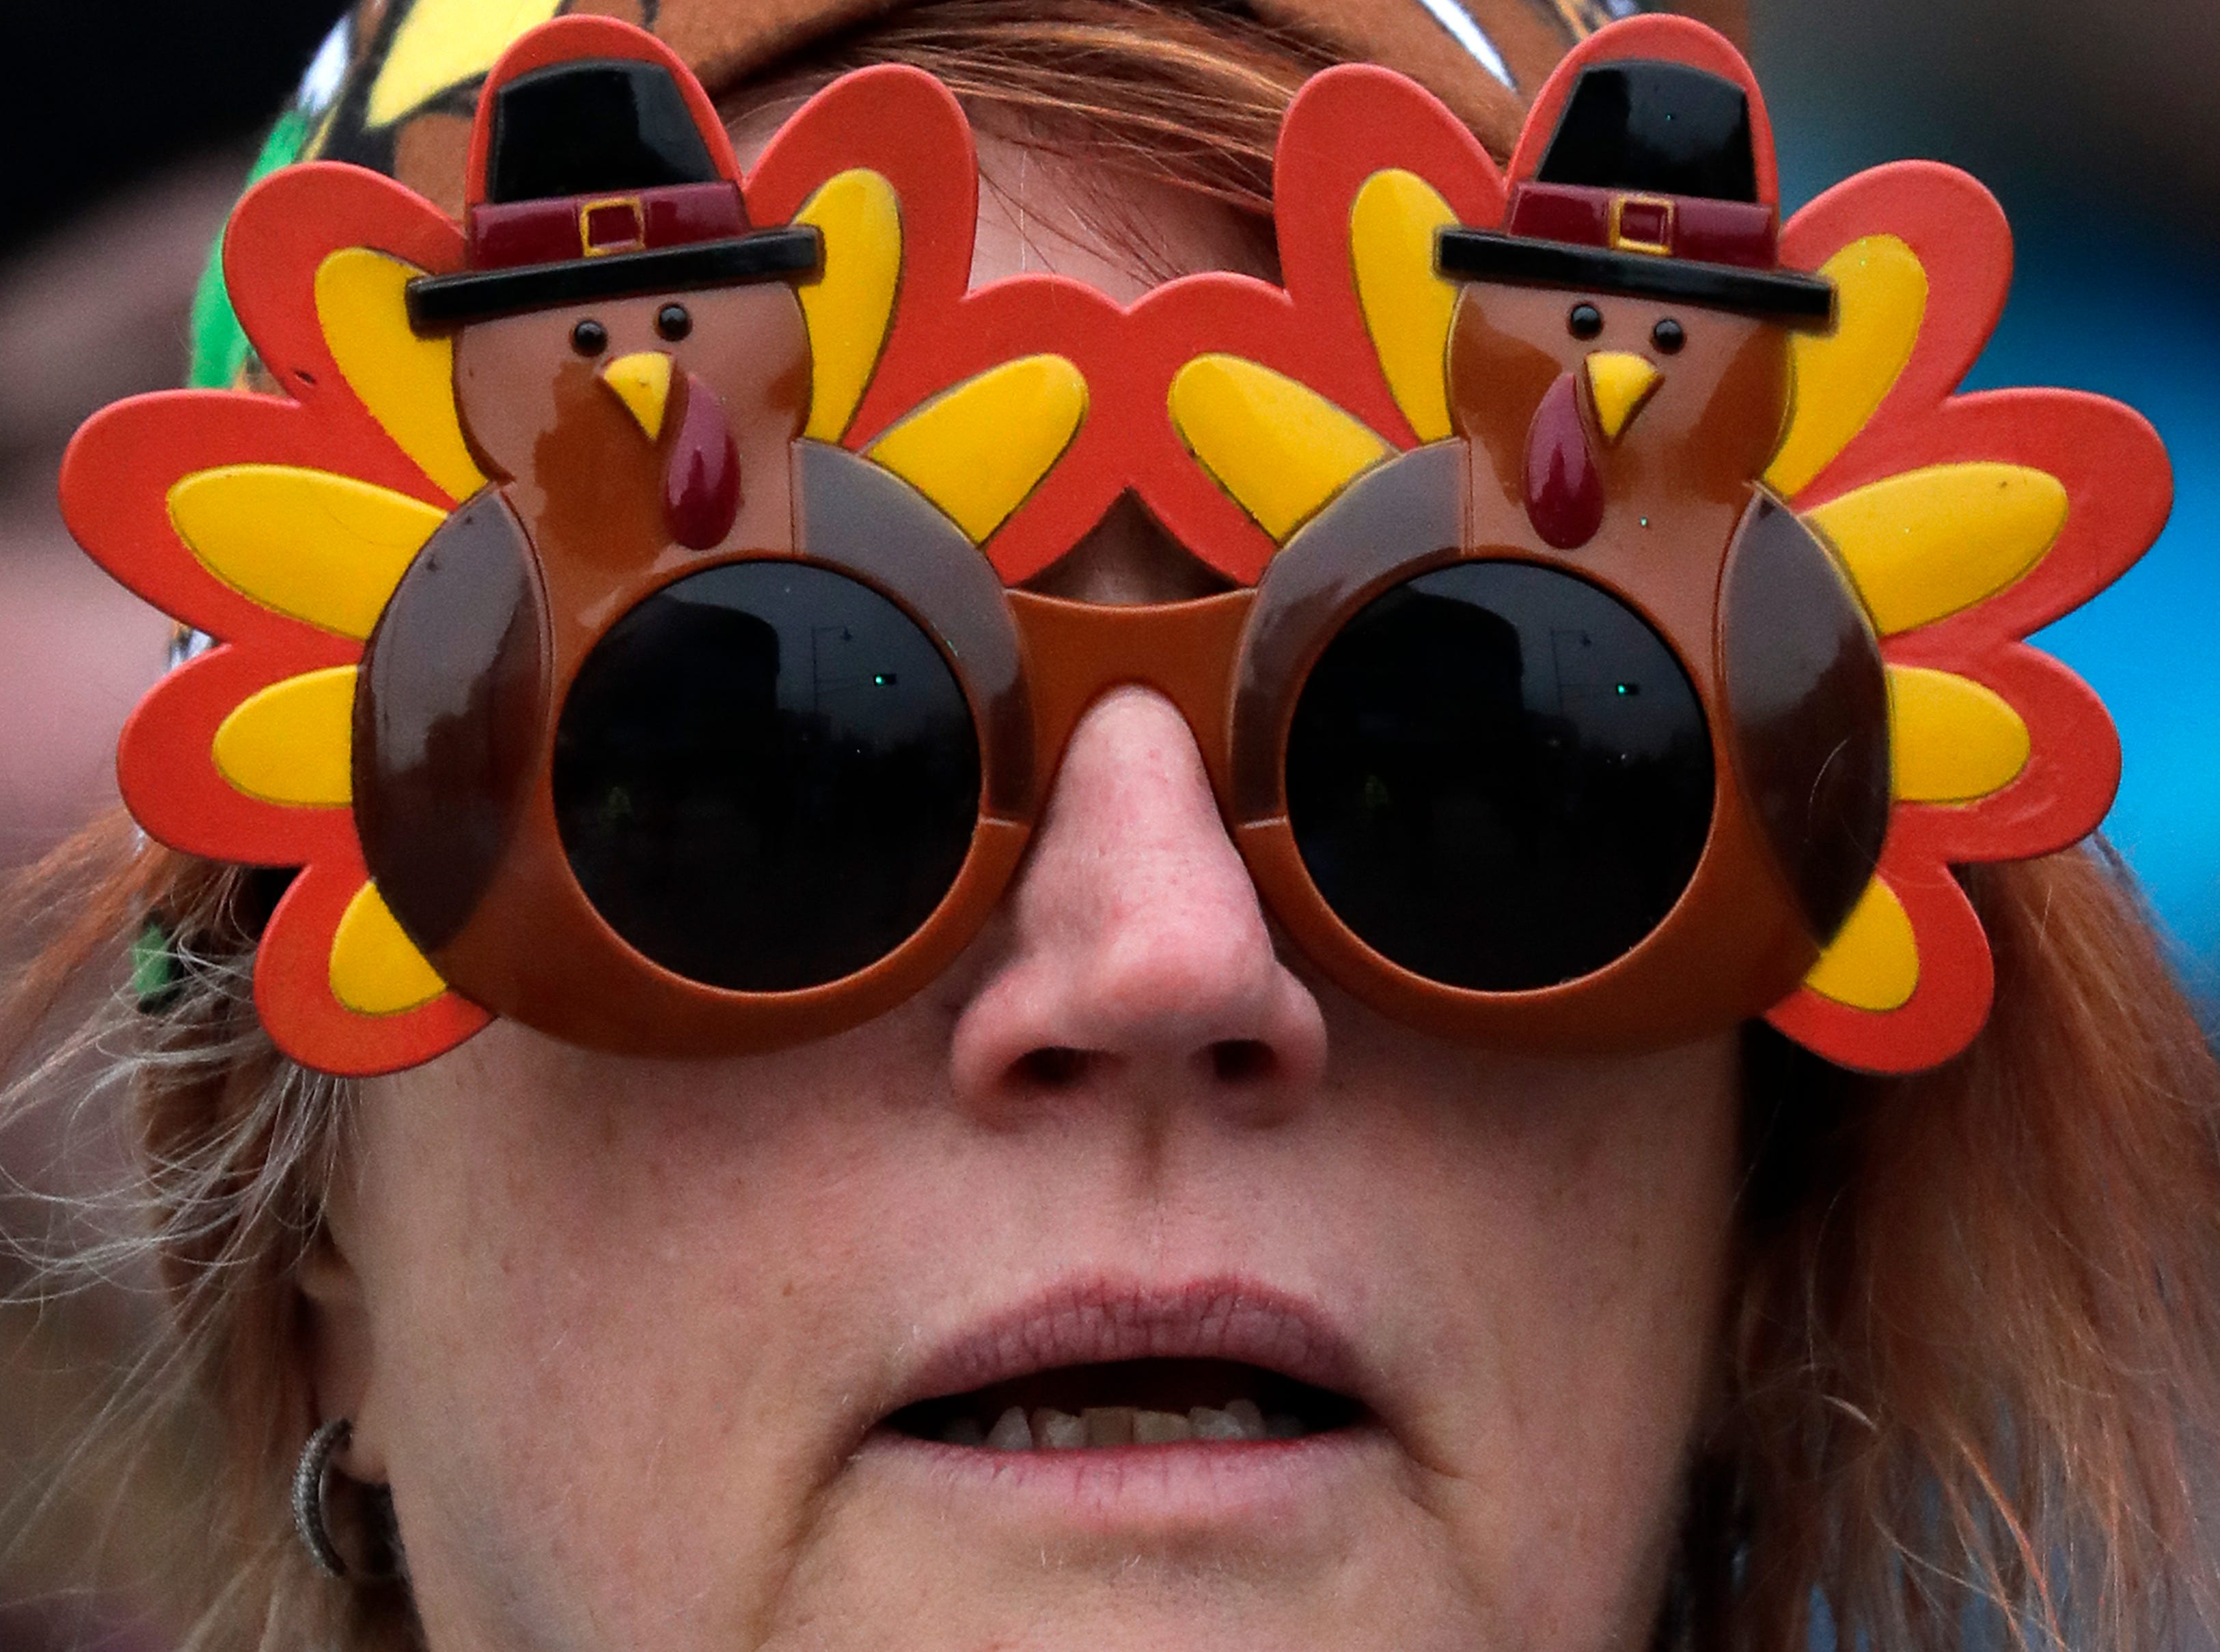 A participant dons turkey sunglasses during the 11th Annual Festival Foods Turkey Trot Thursday, November 22, 2018, in Appleton, Wis. Dan Powers/USA TODAY NETWORK-Wisconsin